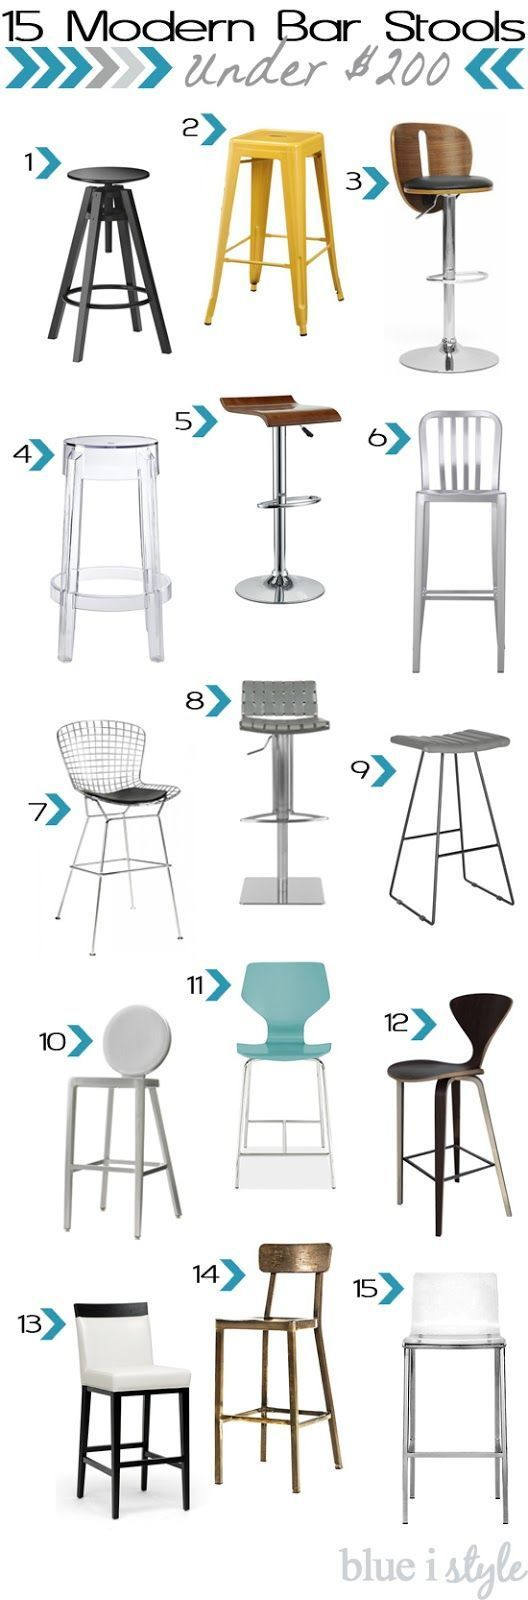 Blue i Style: {shopping for style} 15 Modern Bar Stools Under $200 & the Ones We Picked For Our Kitchen